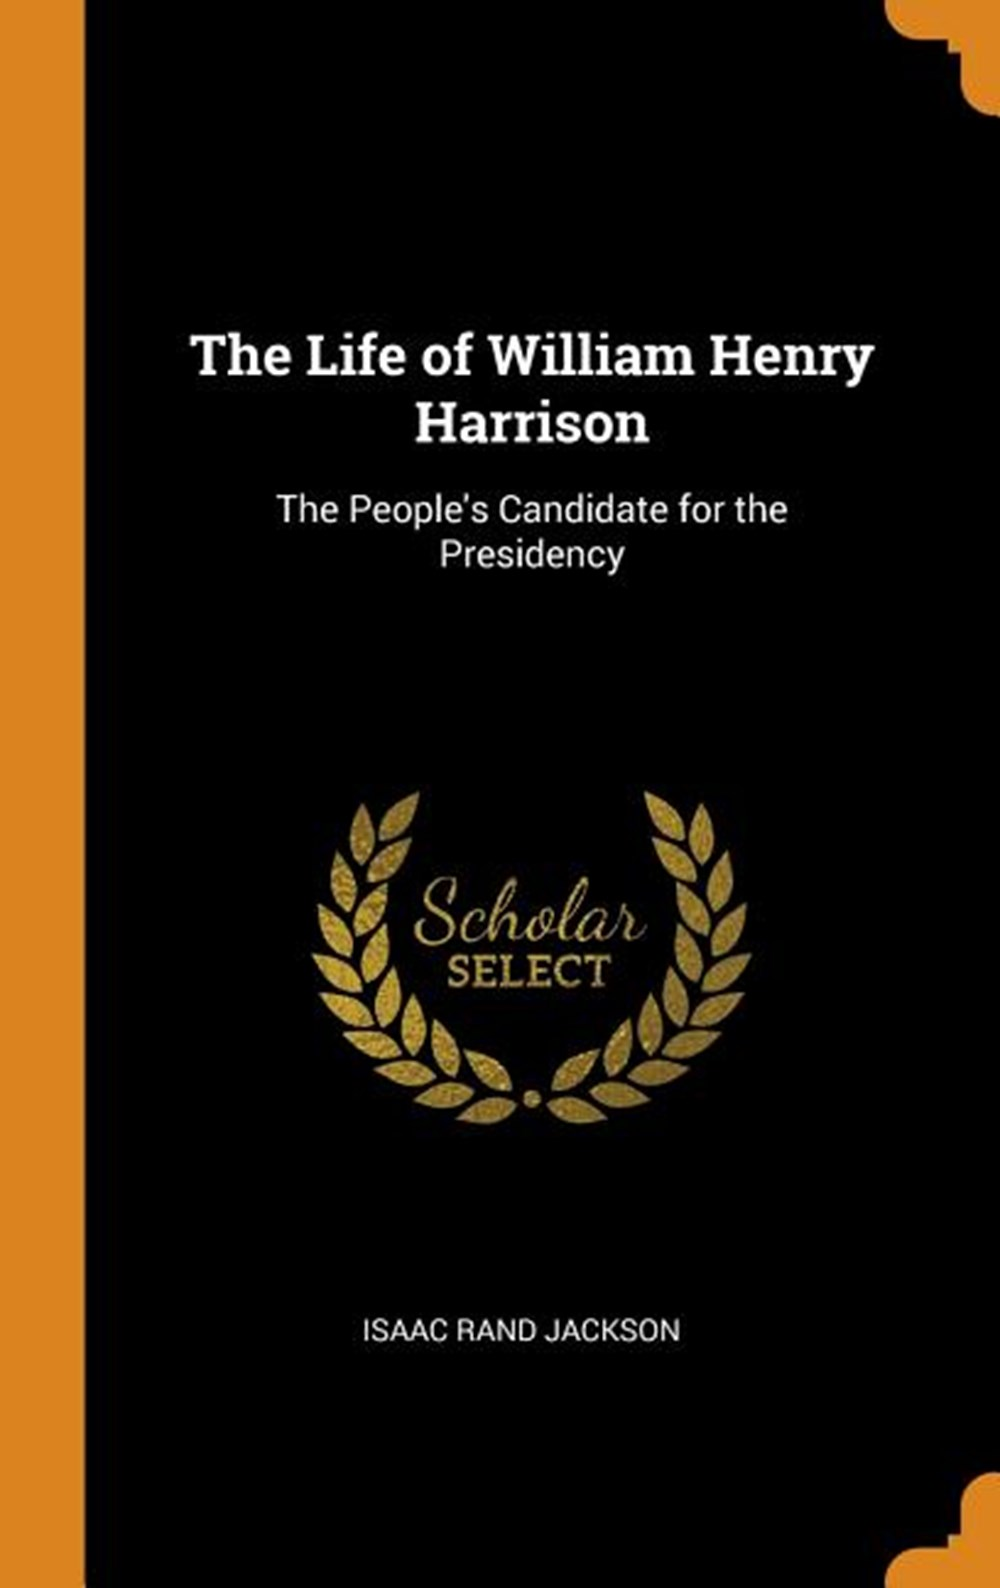 Life of William Henry Harrison The People's Candidate for the Presidency